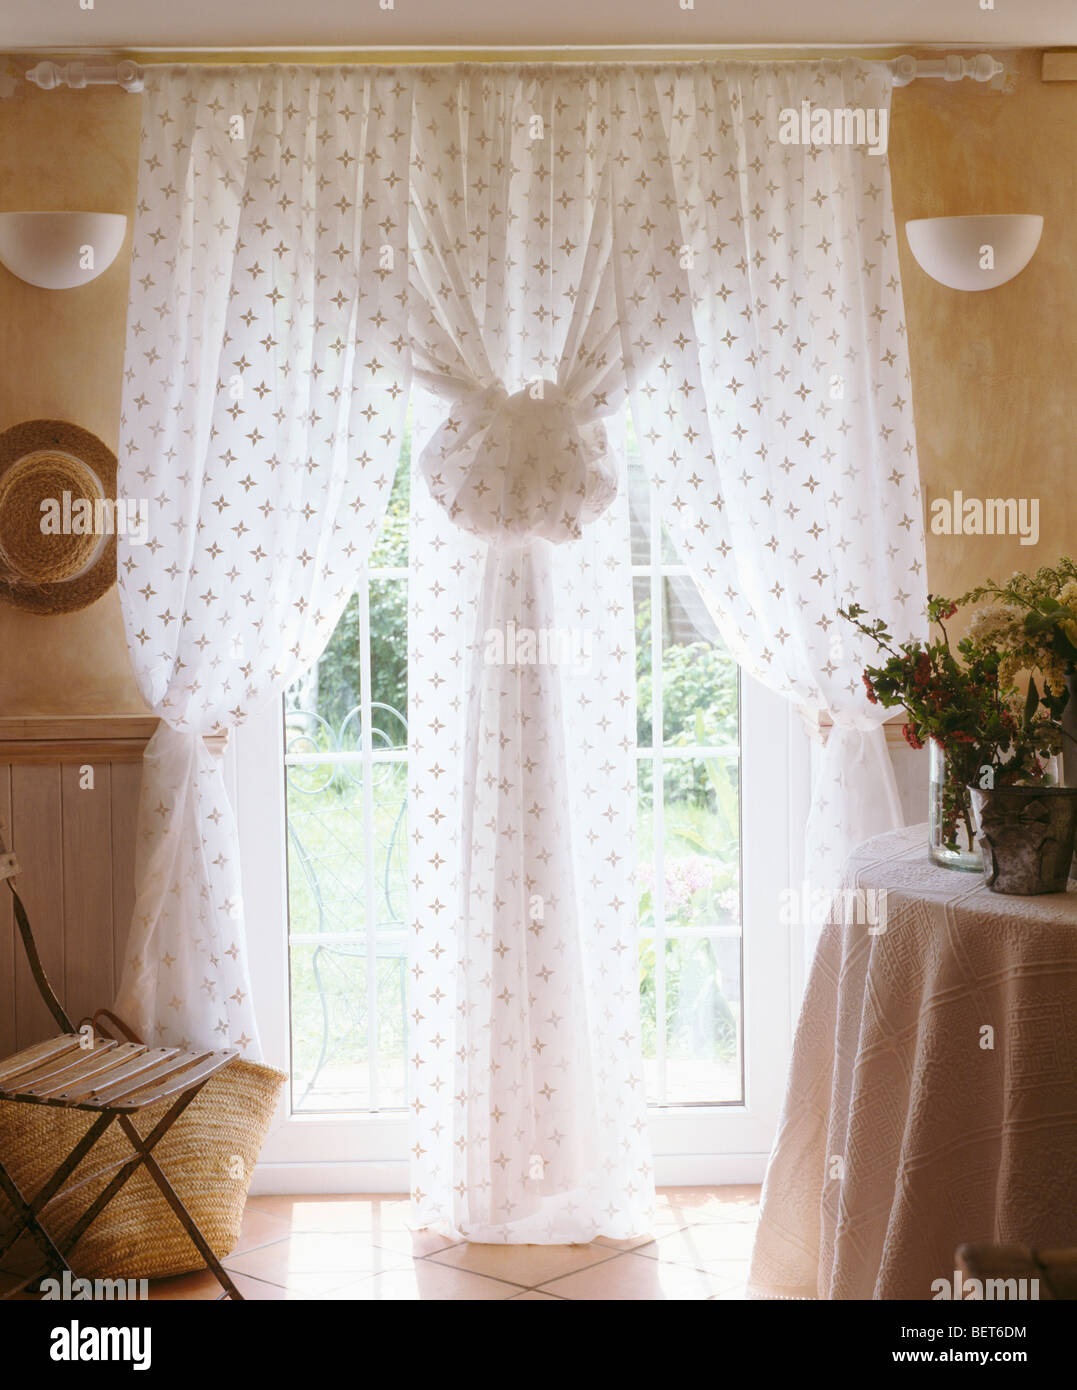 Close Up Of Spotted White Voile Curtains On French Windows In Cottage Dining Room